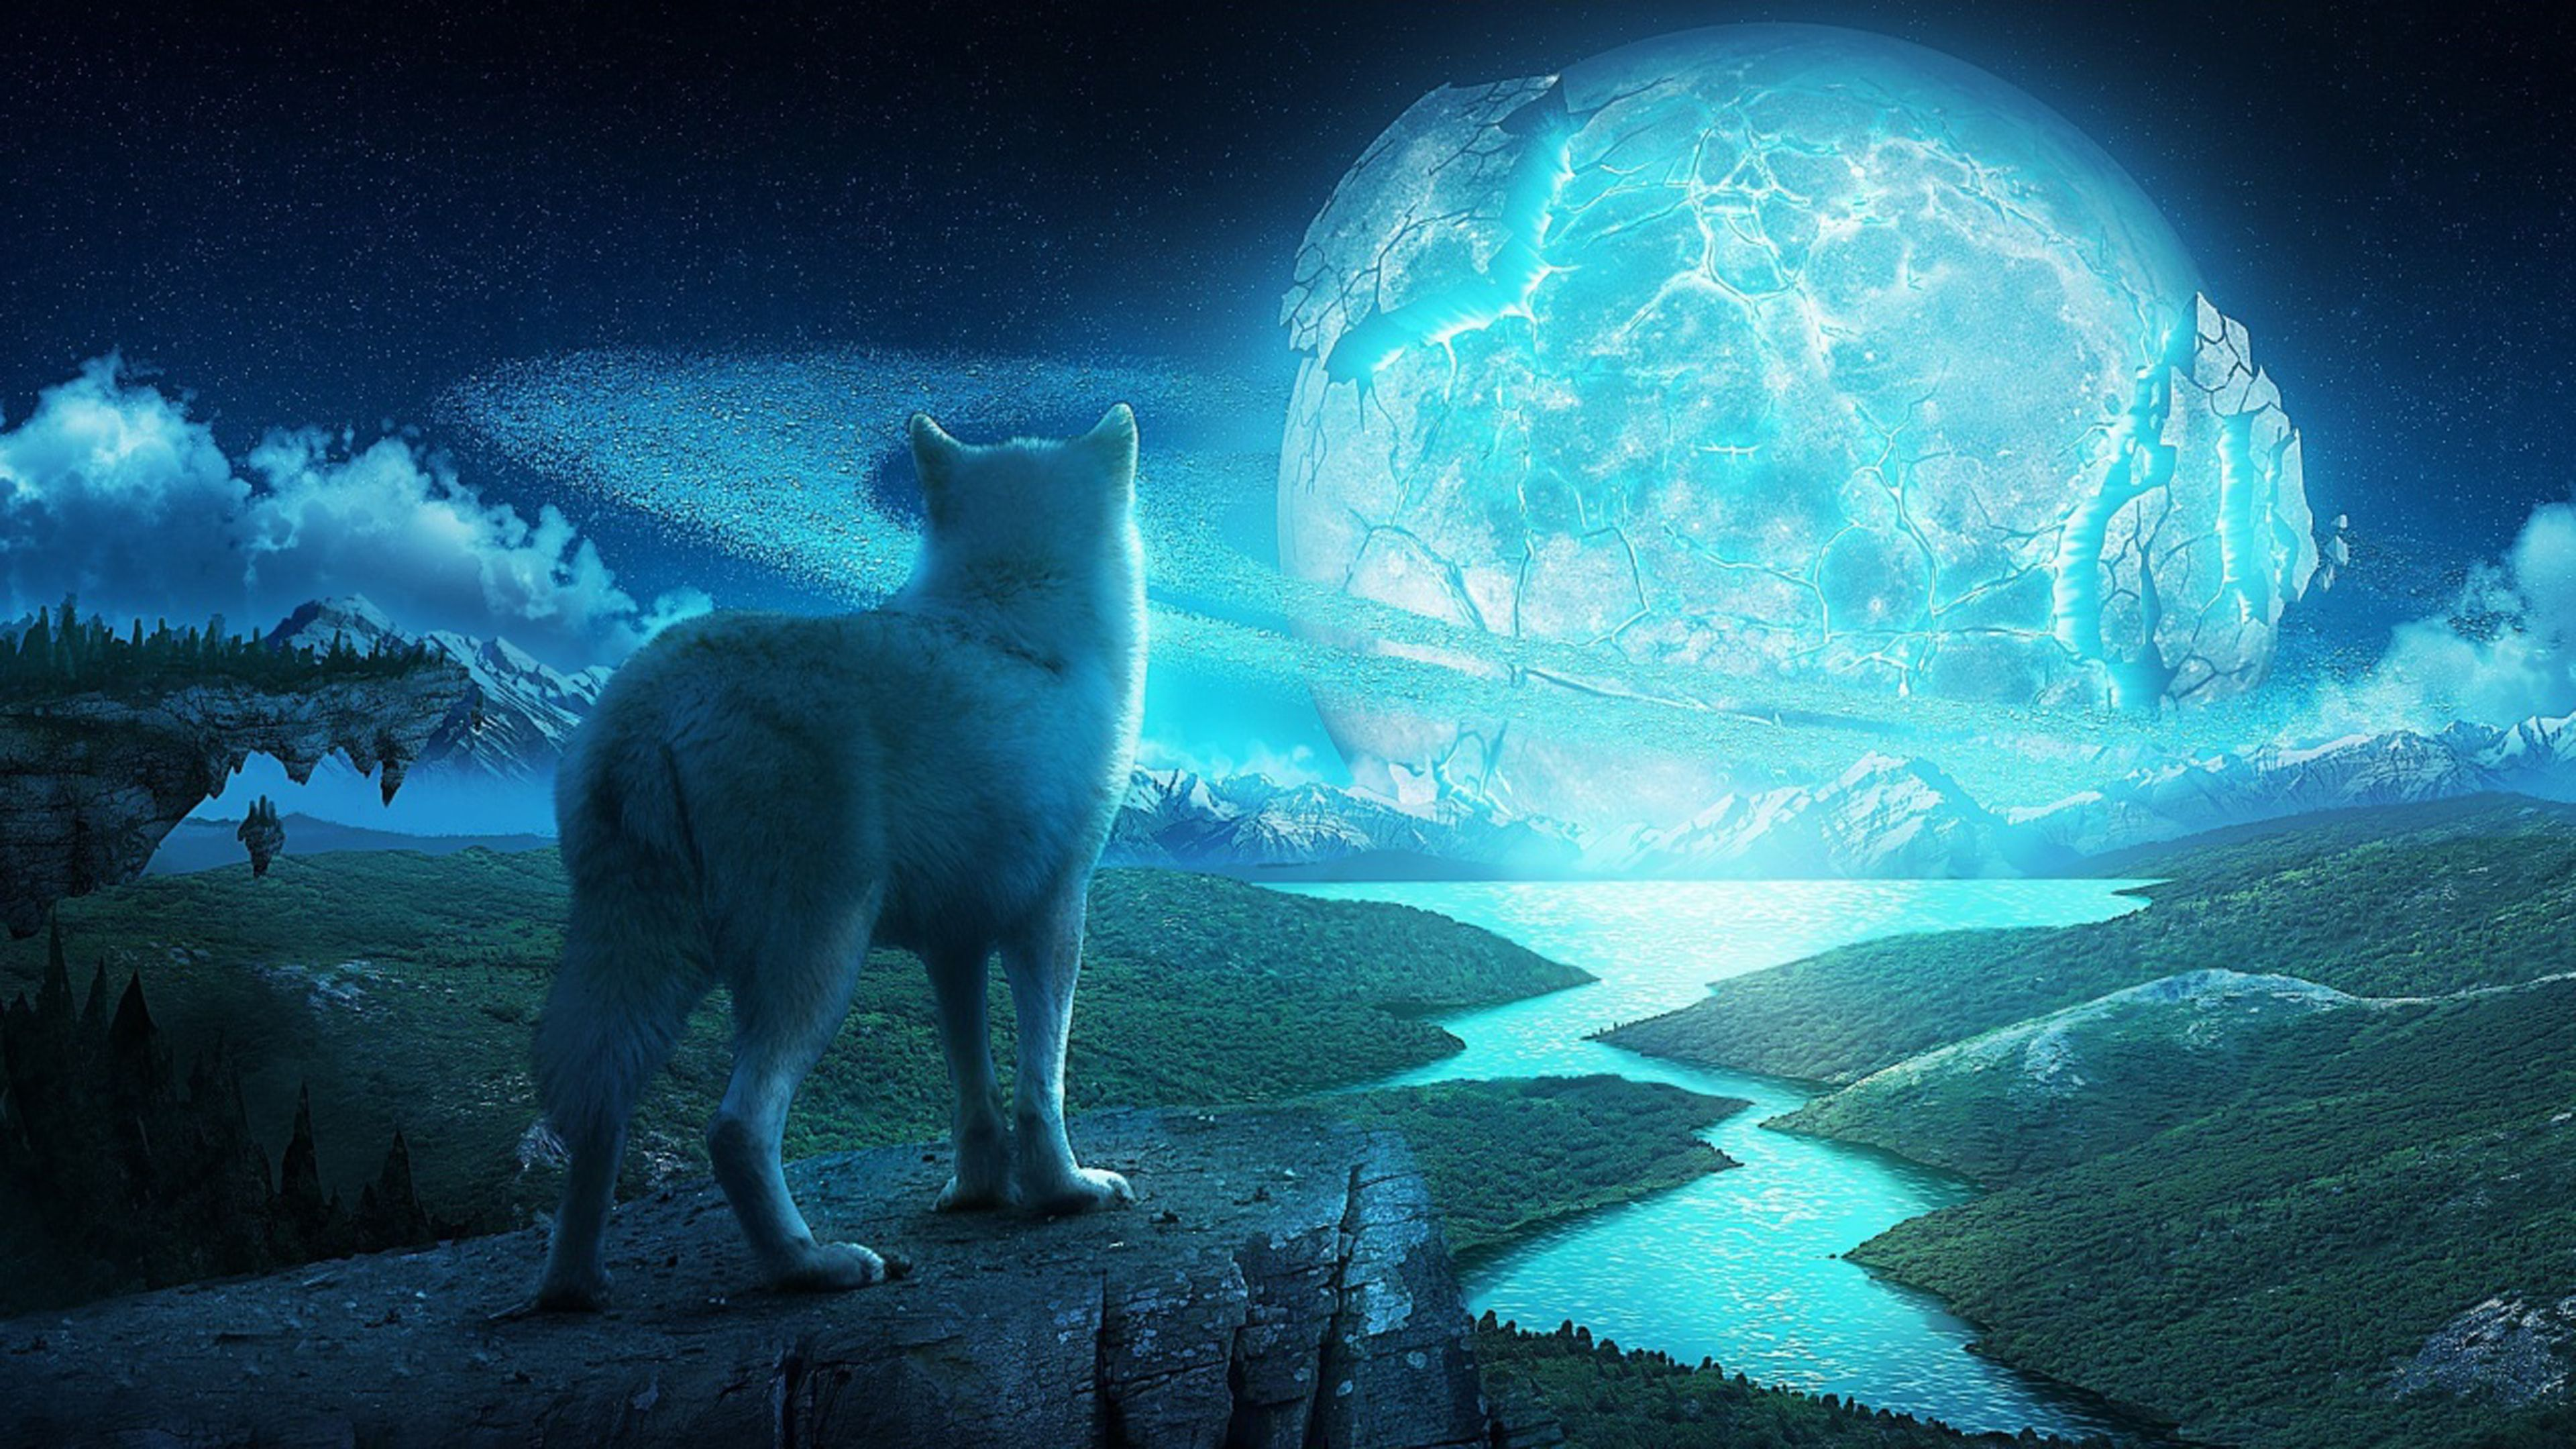 The mystical wolf fantasy wallpaper background picture  #wolf #animal #fantasy